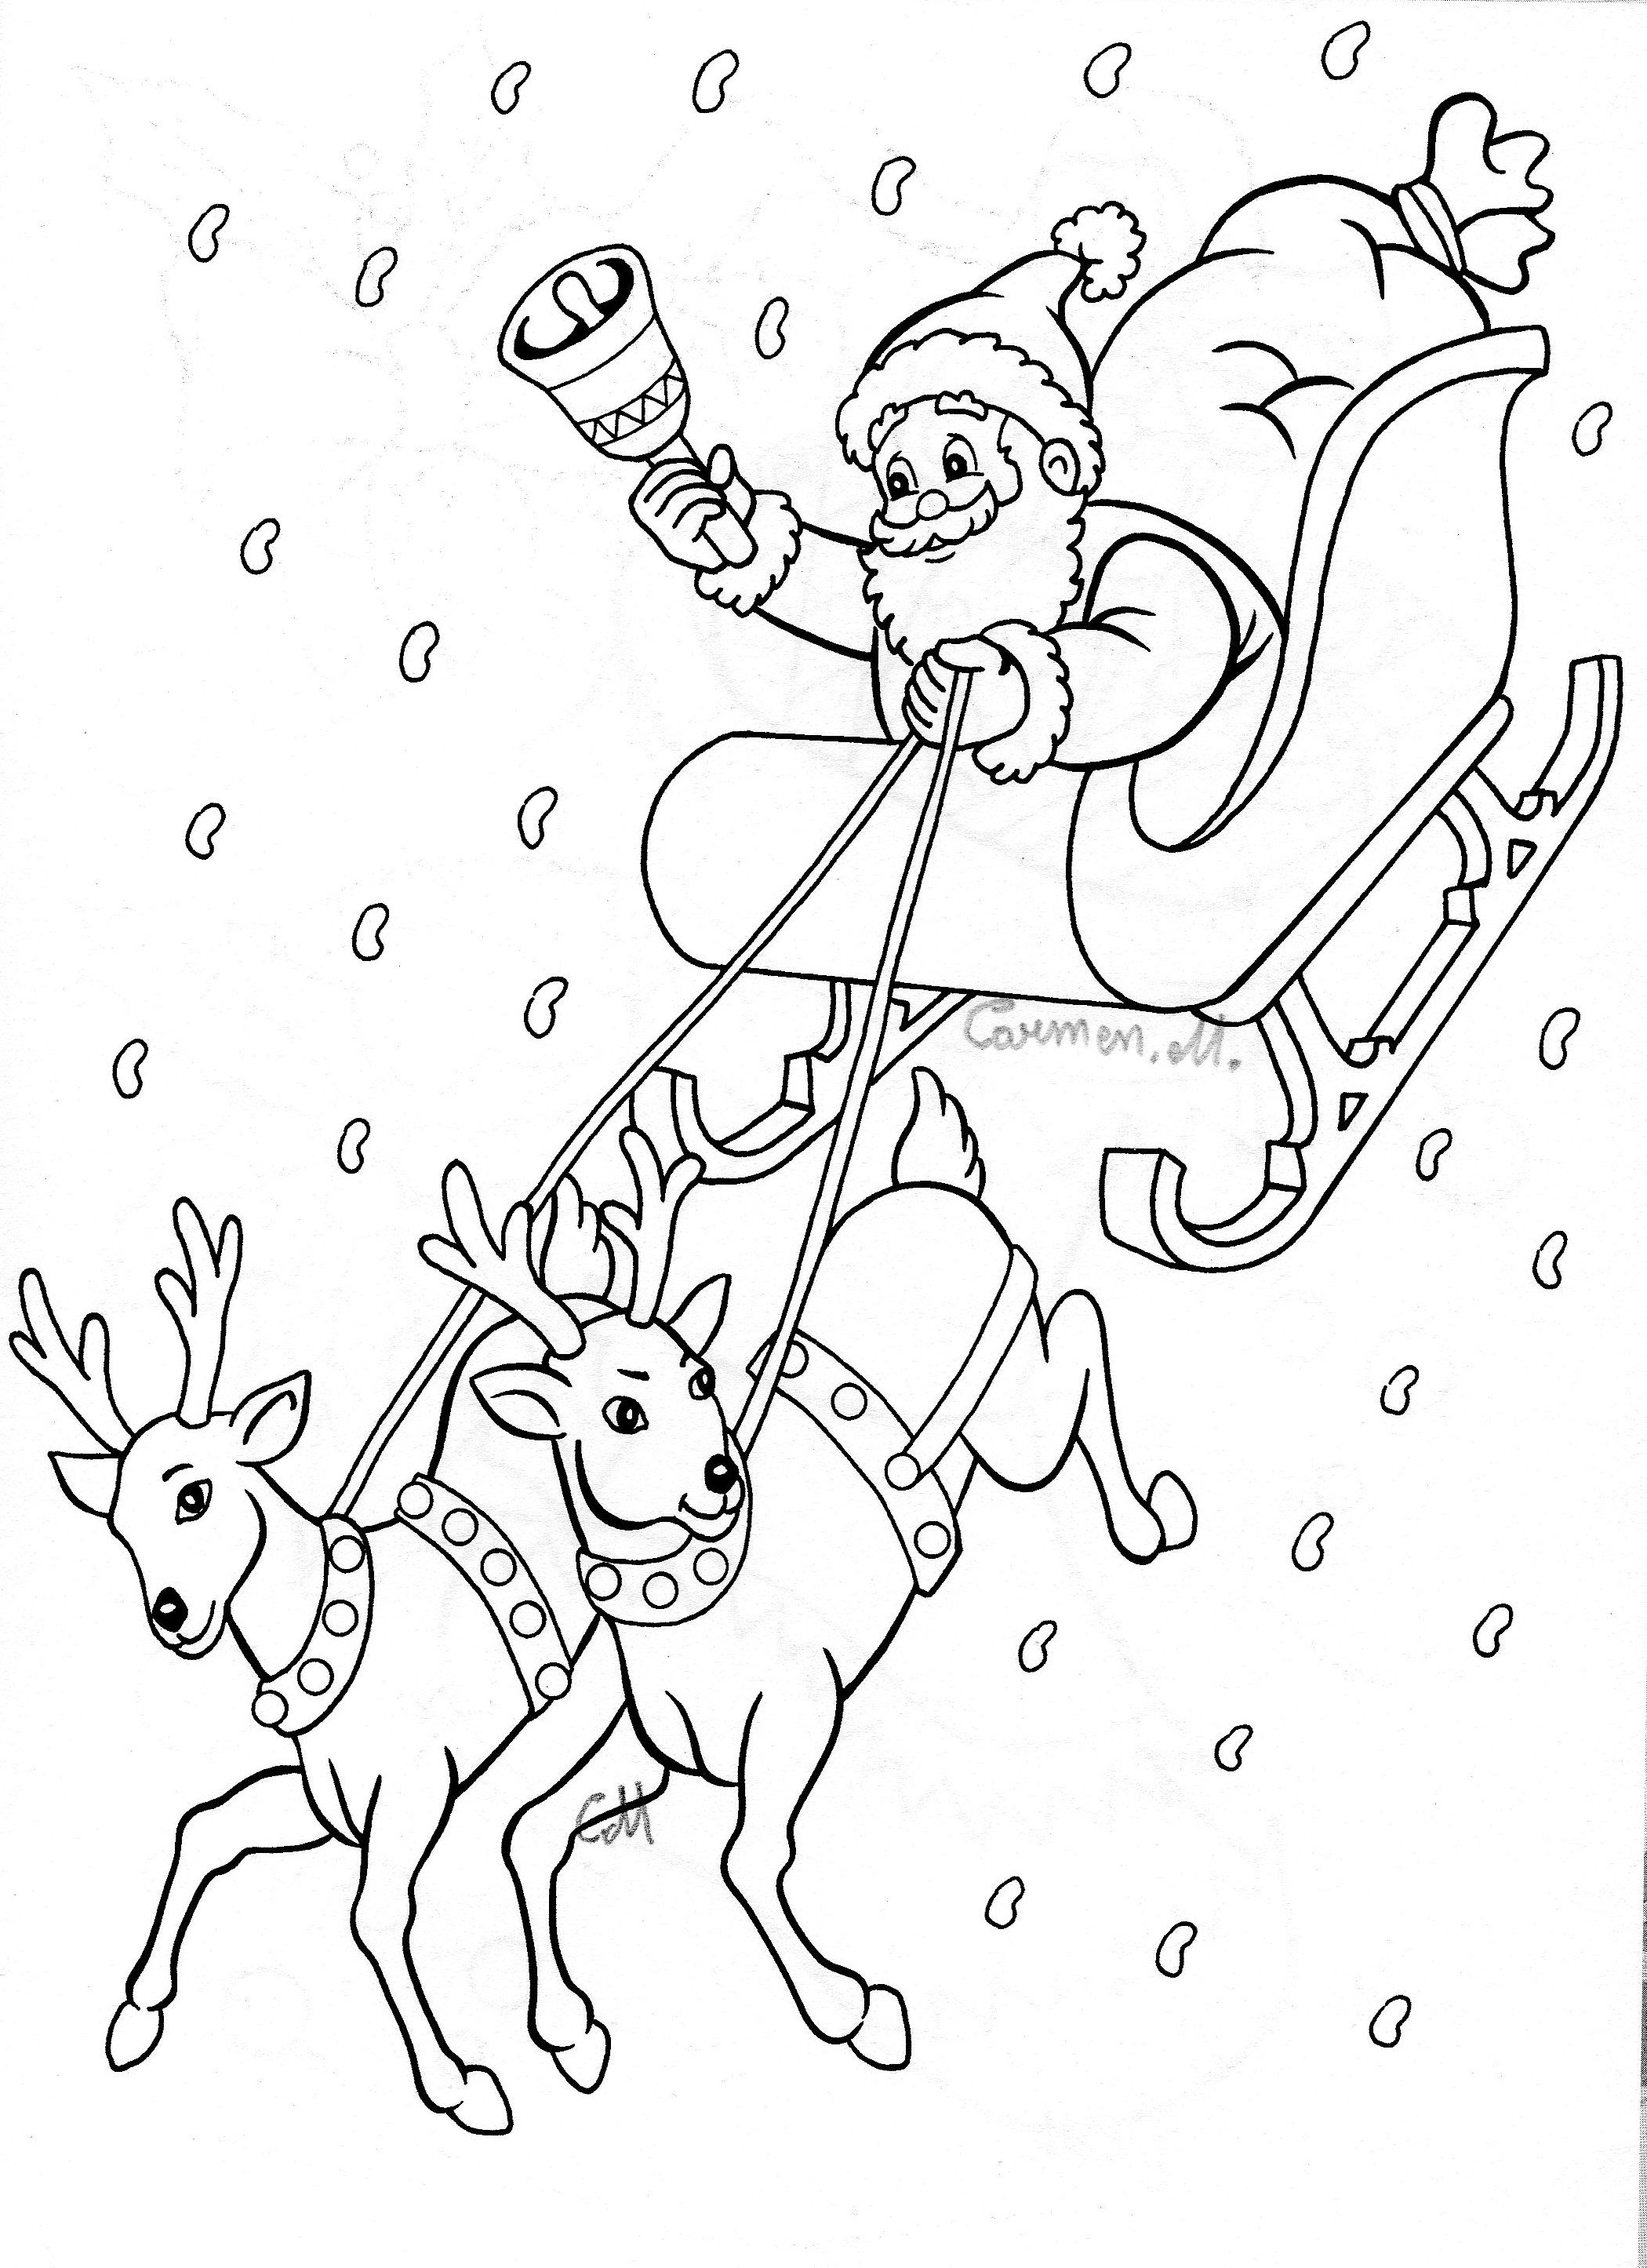 Santa And Sleigh Merry Christmas Coloring Pages Printable Christmas Coloring Pages Christmas Drawing